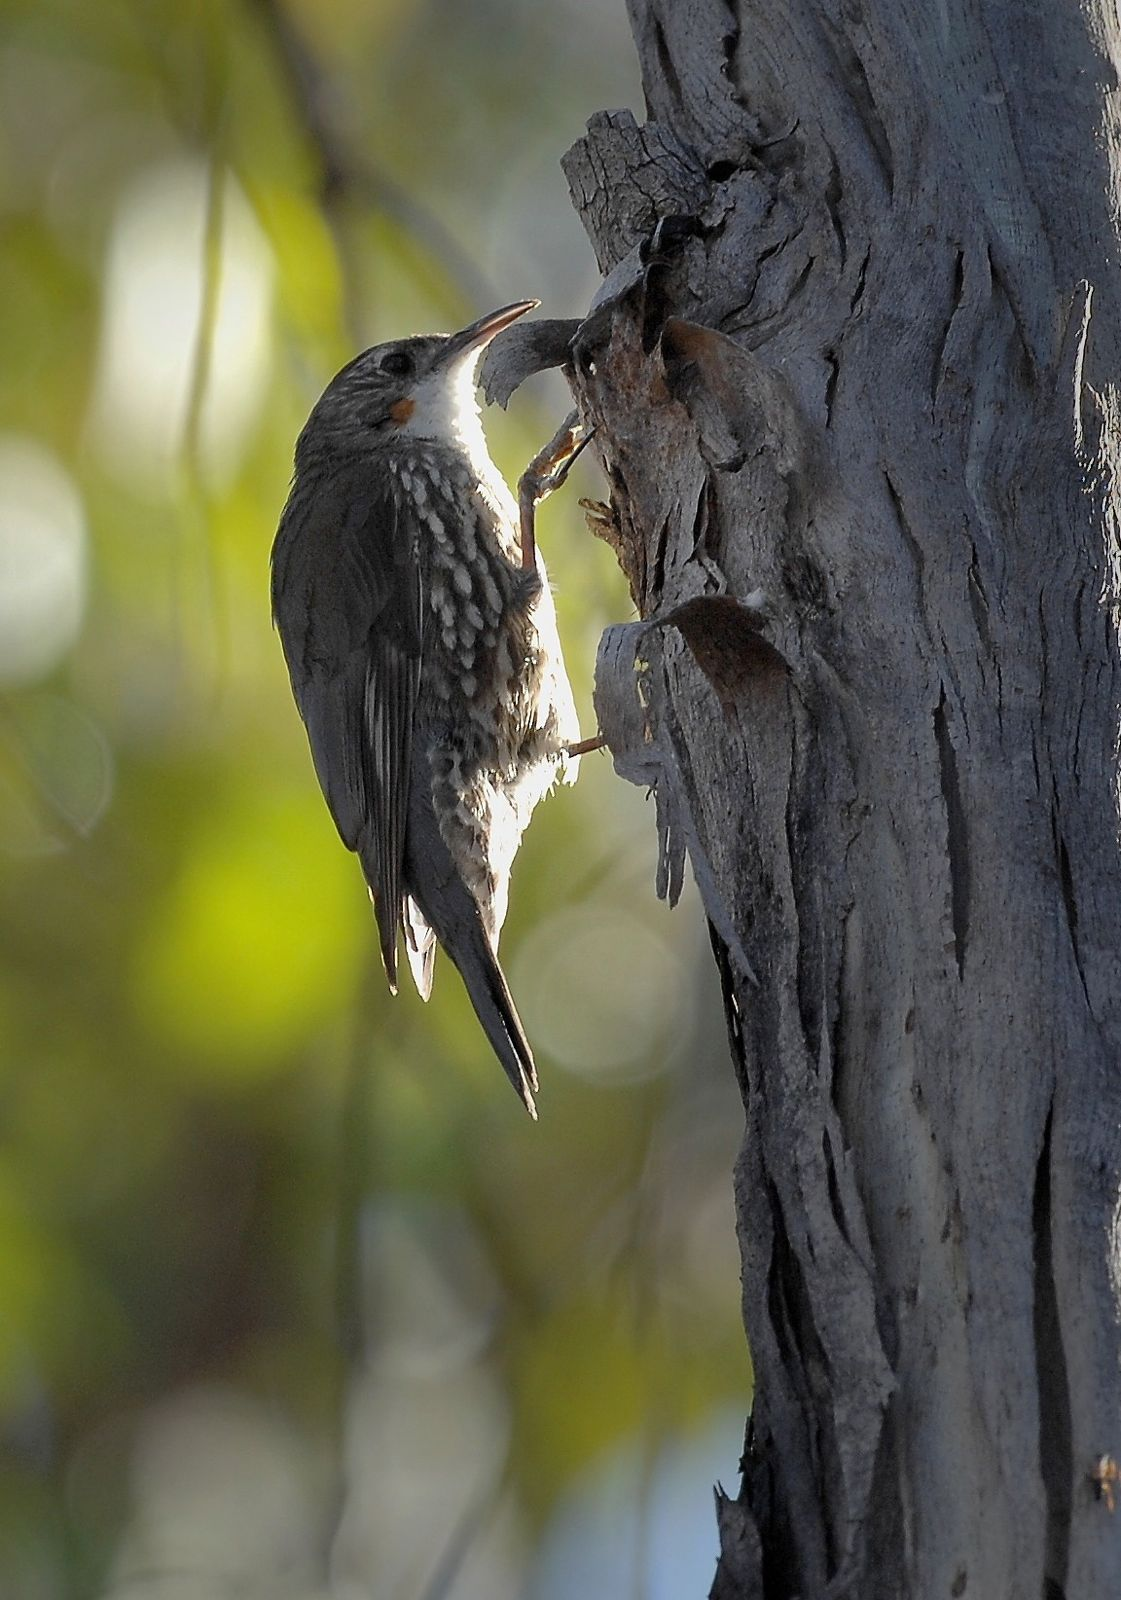 White-fronted Treecreeper in action in the last moments of sunlight.